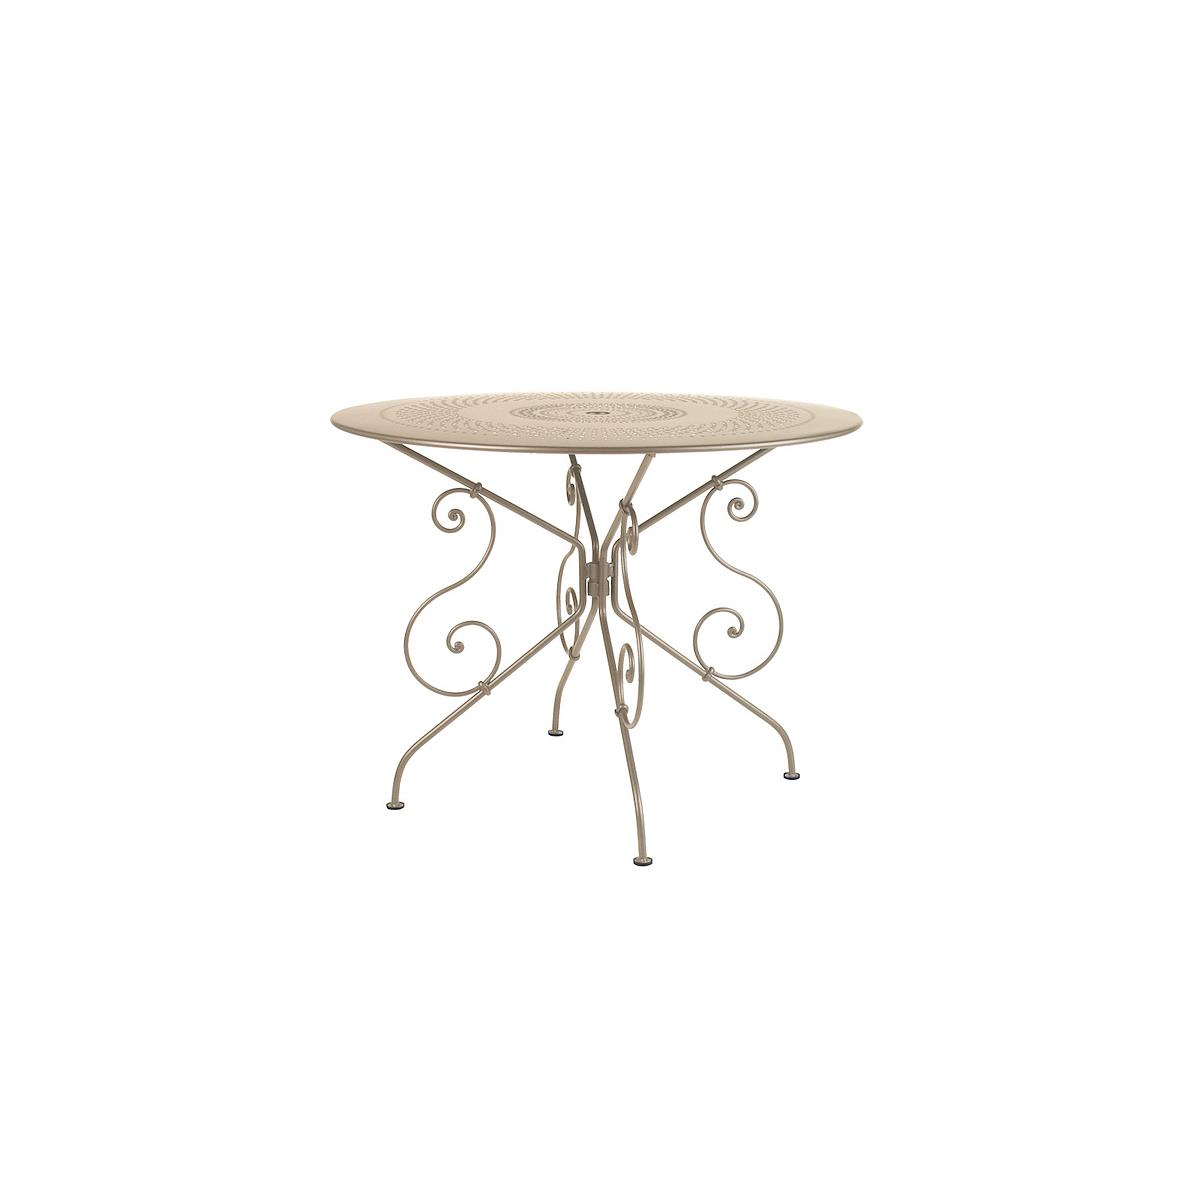 1900 by Fermob Table ronde 96 cm muscade